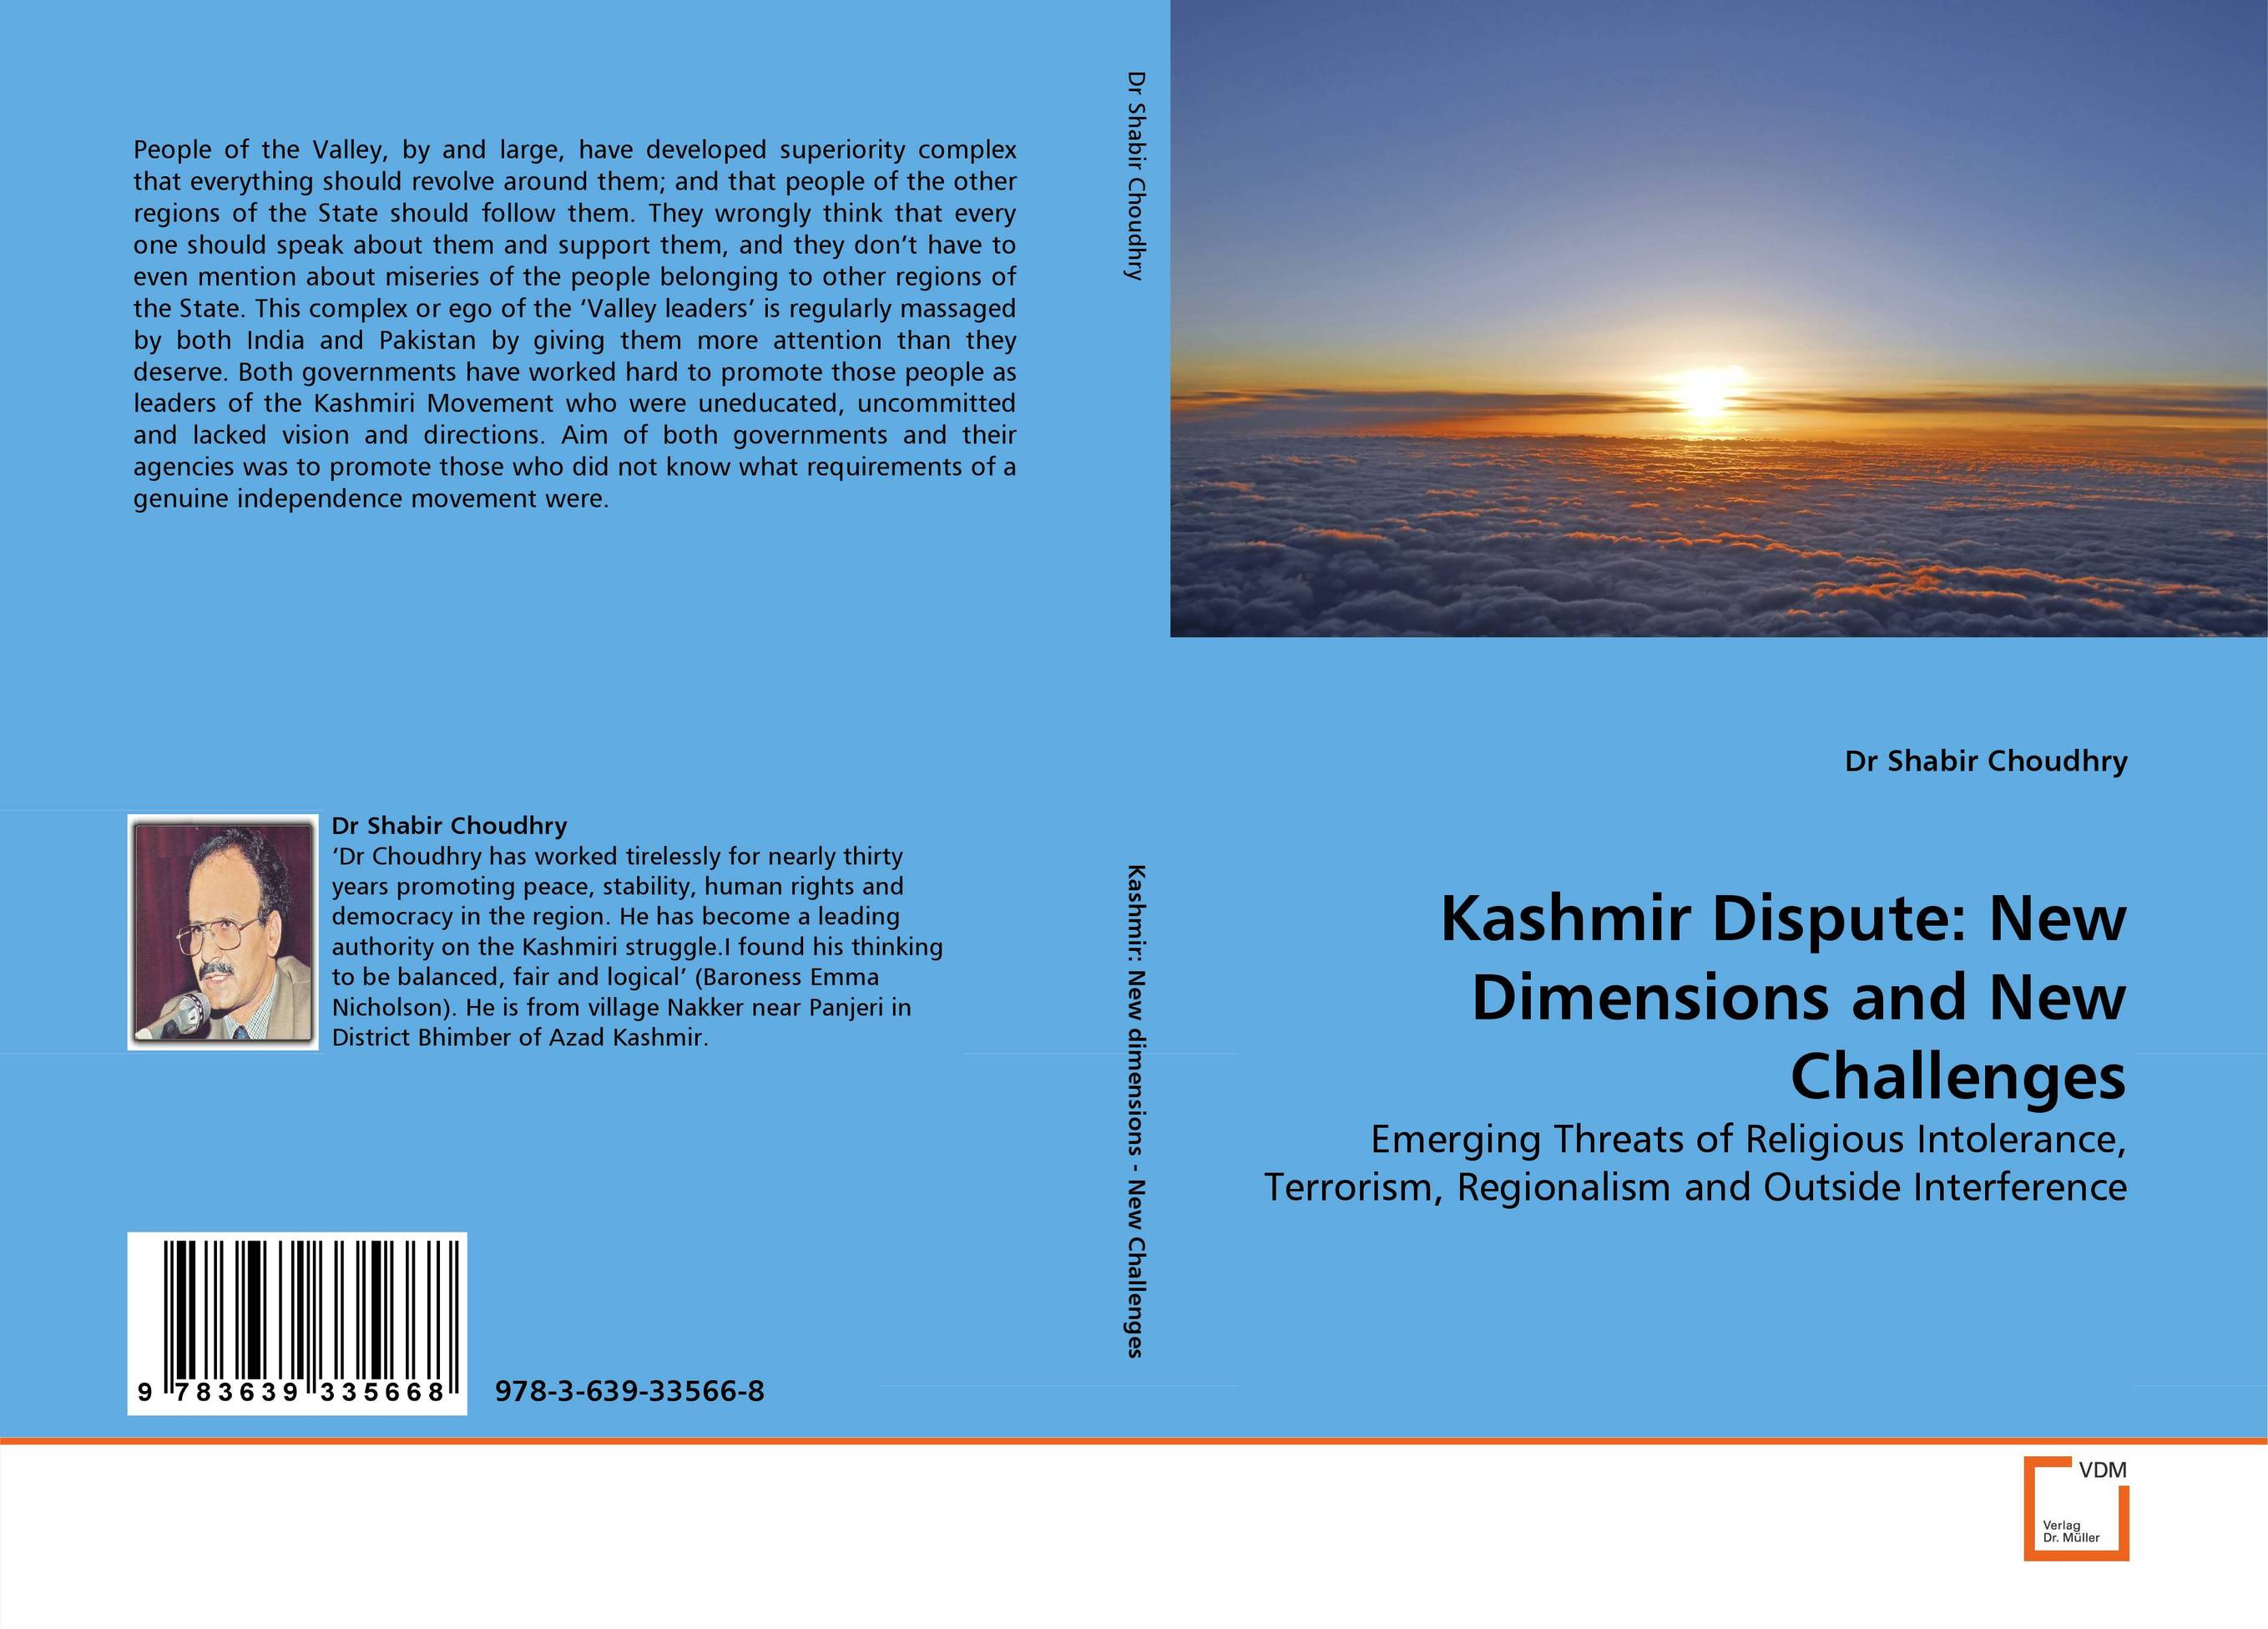 Kashmir Dispute: New Dimensions and New Challenges dimensions of state building